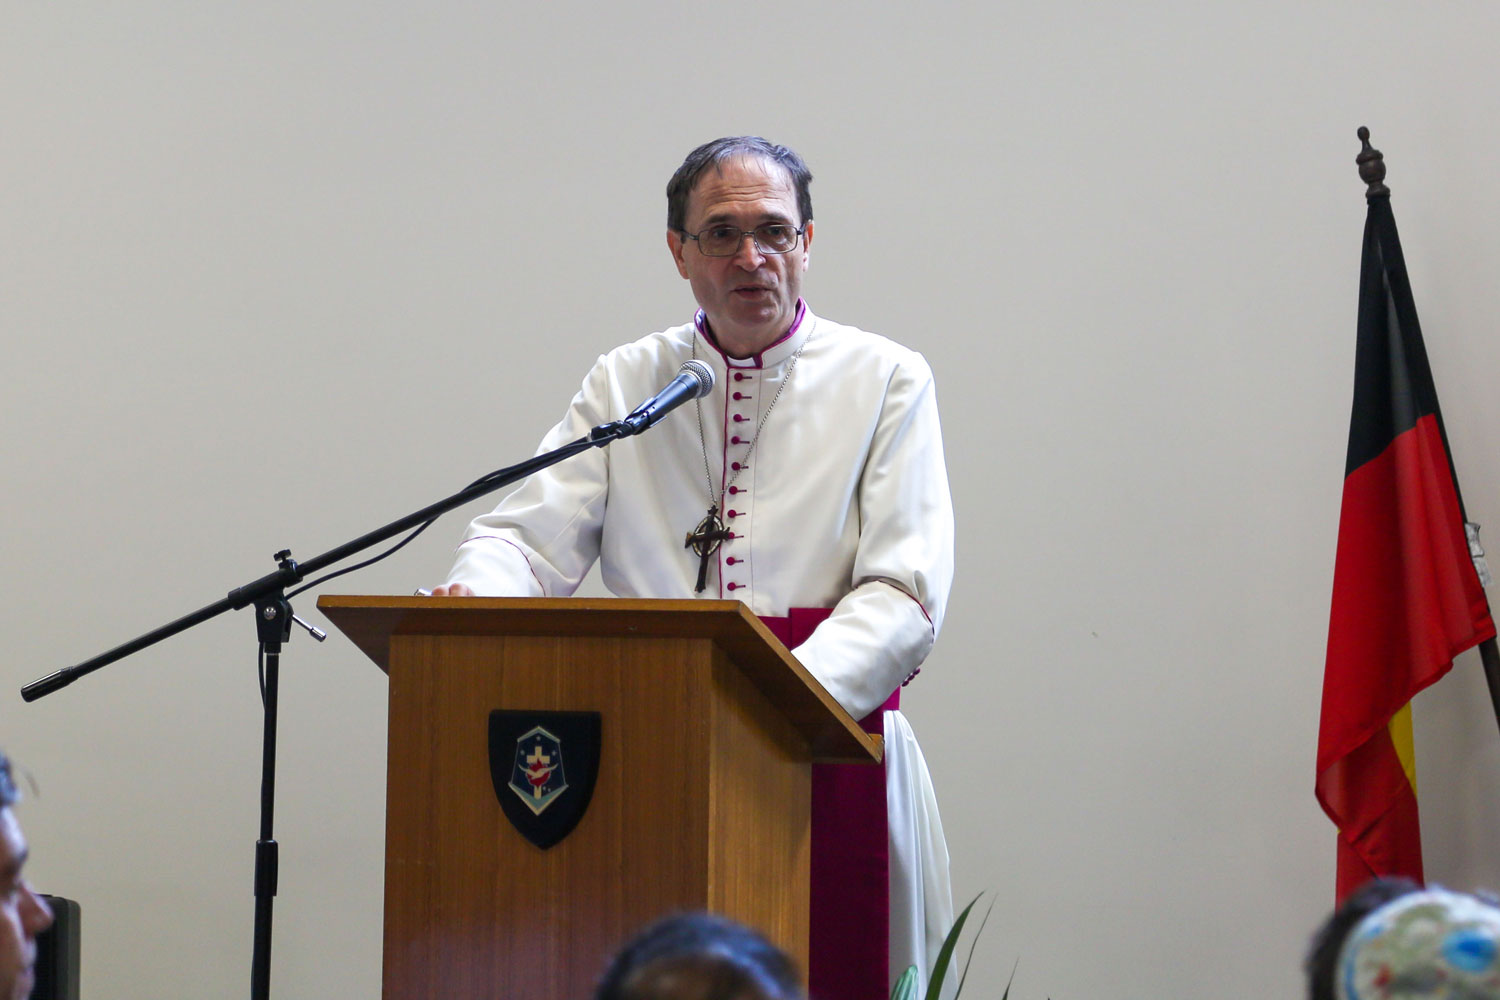 a man at a lectern in white religious robes